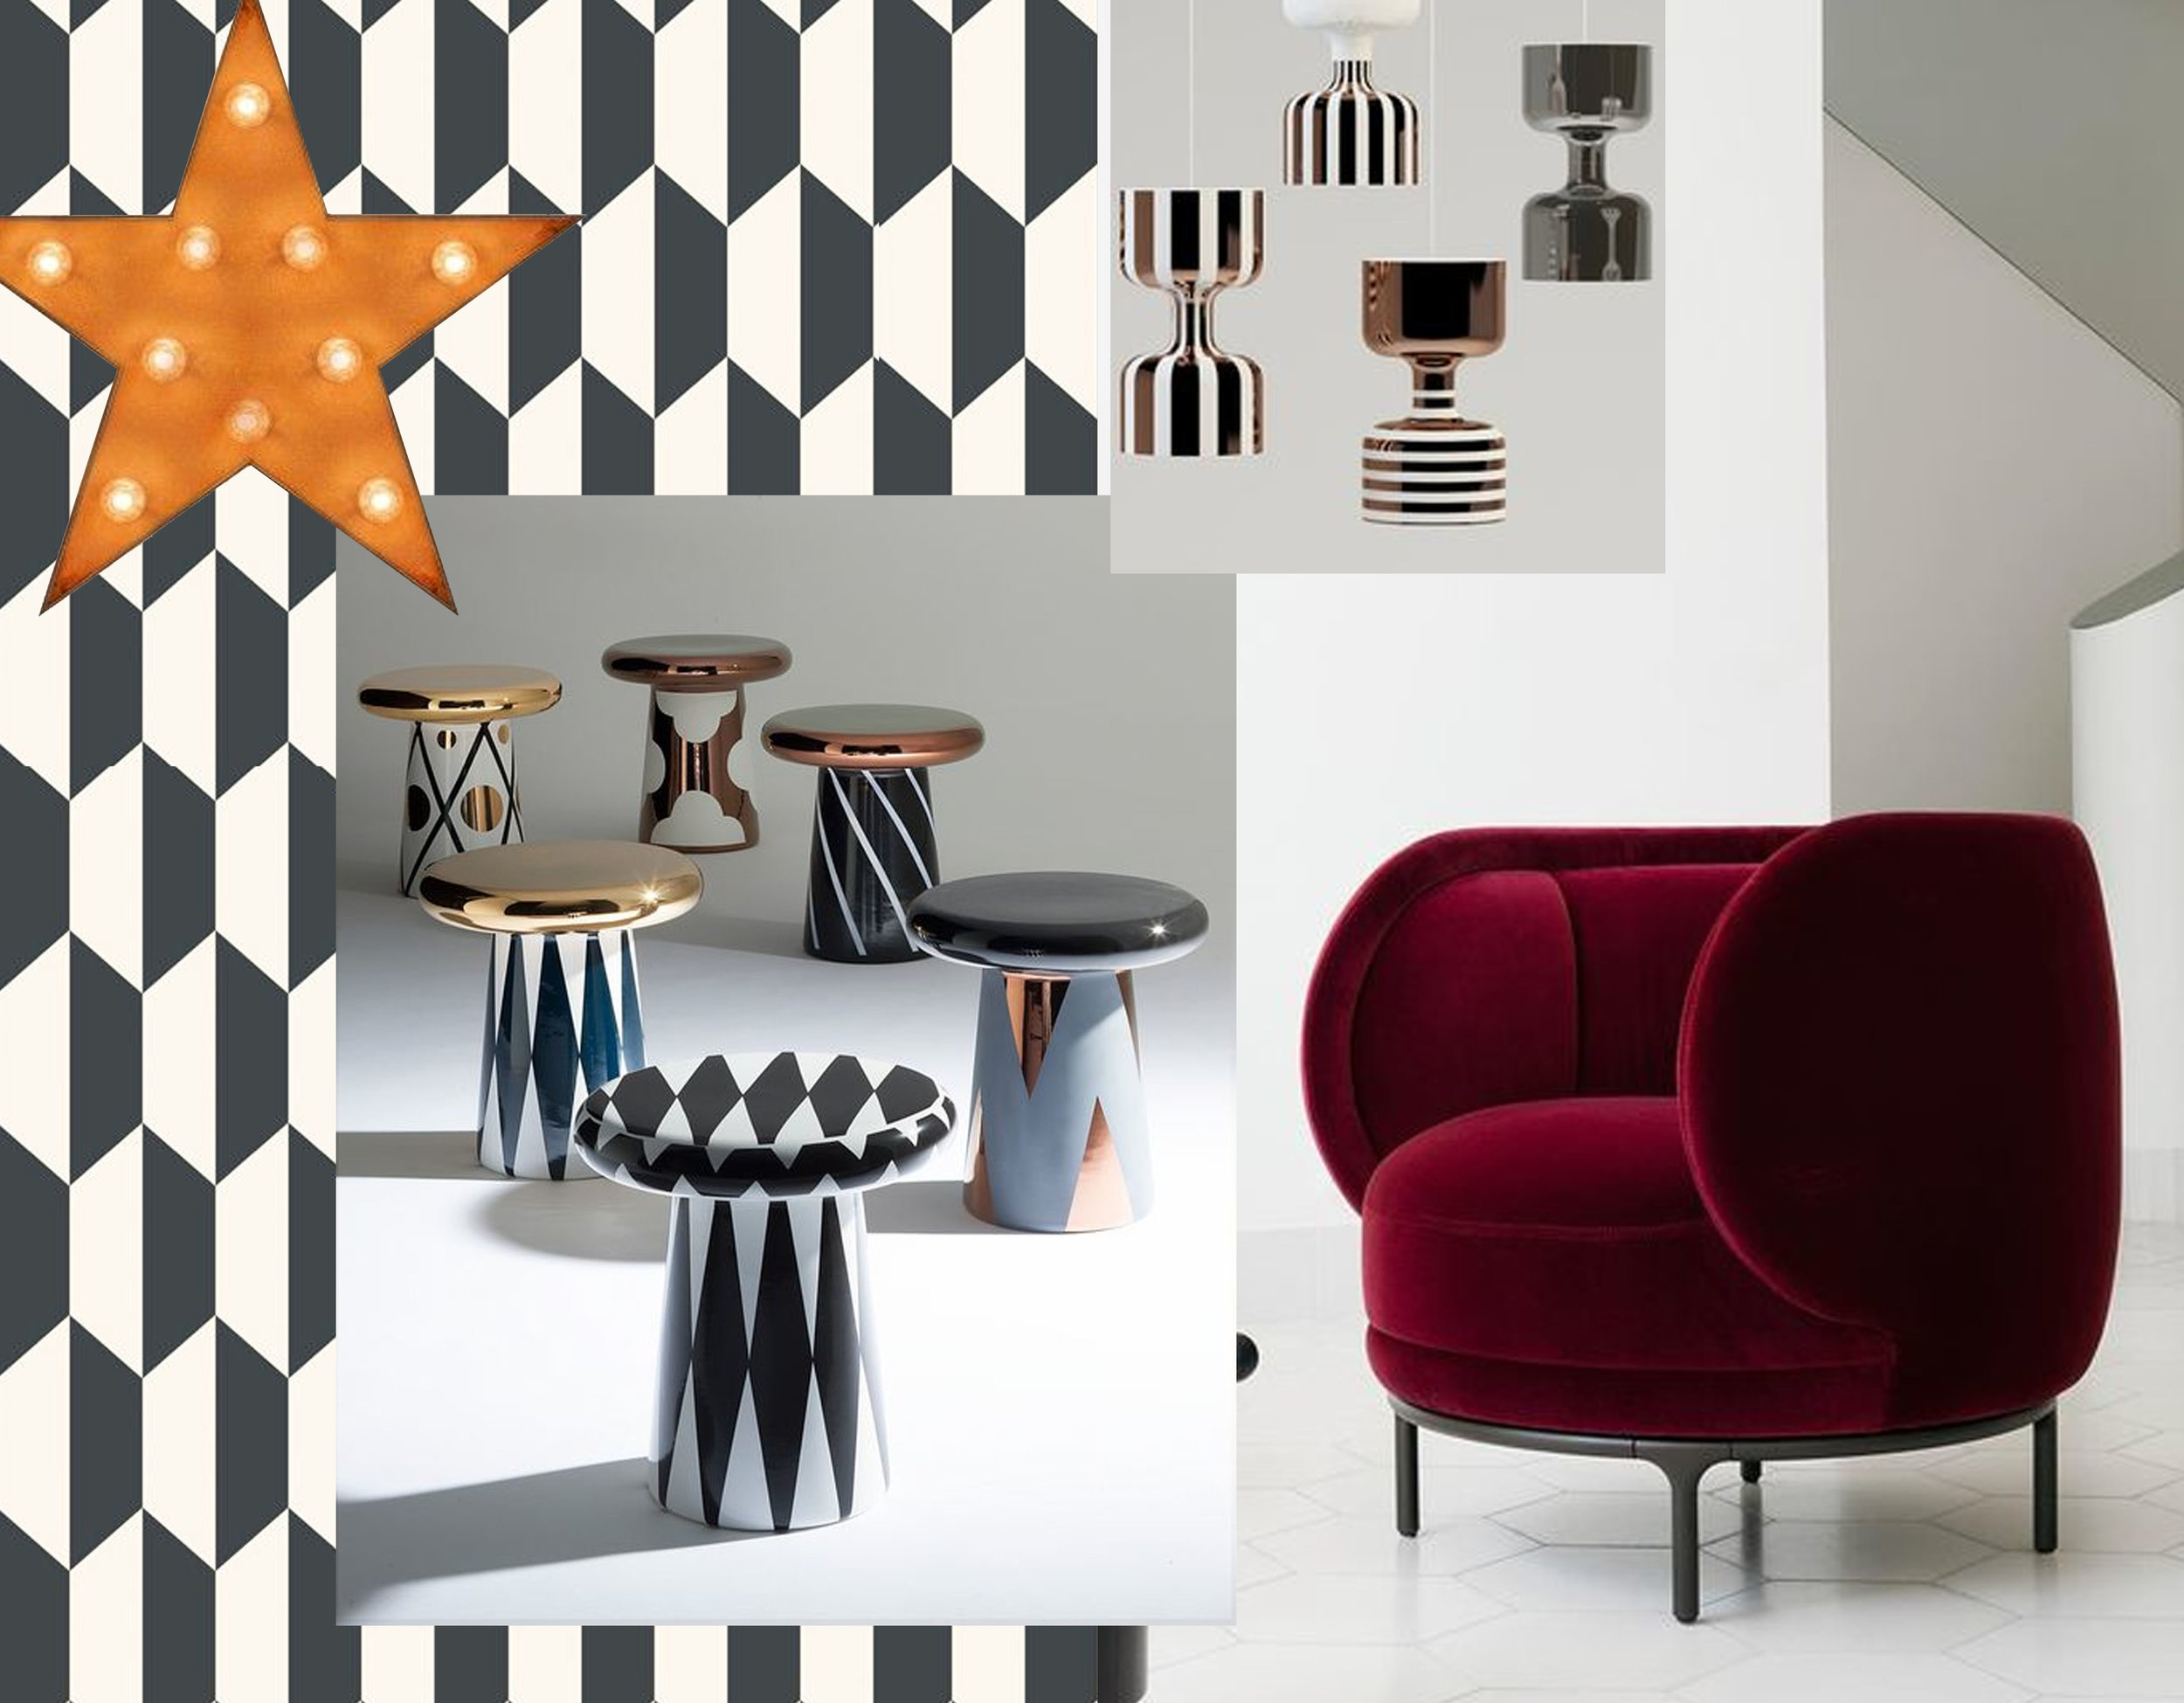 wallpaper Tile  Cole & Son  - star with light bulb  Really Nice Things  - T-Table Jaime Hayon for Bosa via  Sohomod  - hanging lamps Chapiteau by Ekaterina Elizarova for Bosa via  Archiproducts - armchair by jaime Hayon for  Wittmann